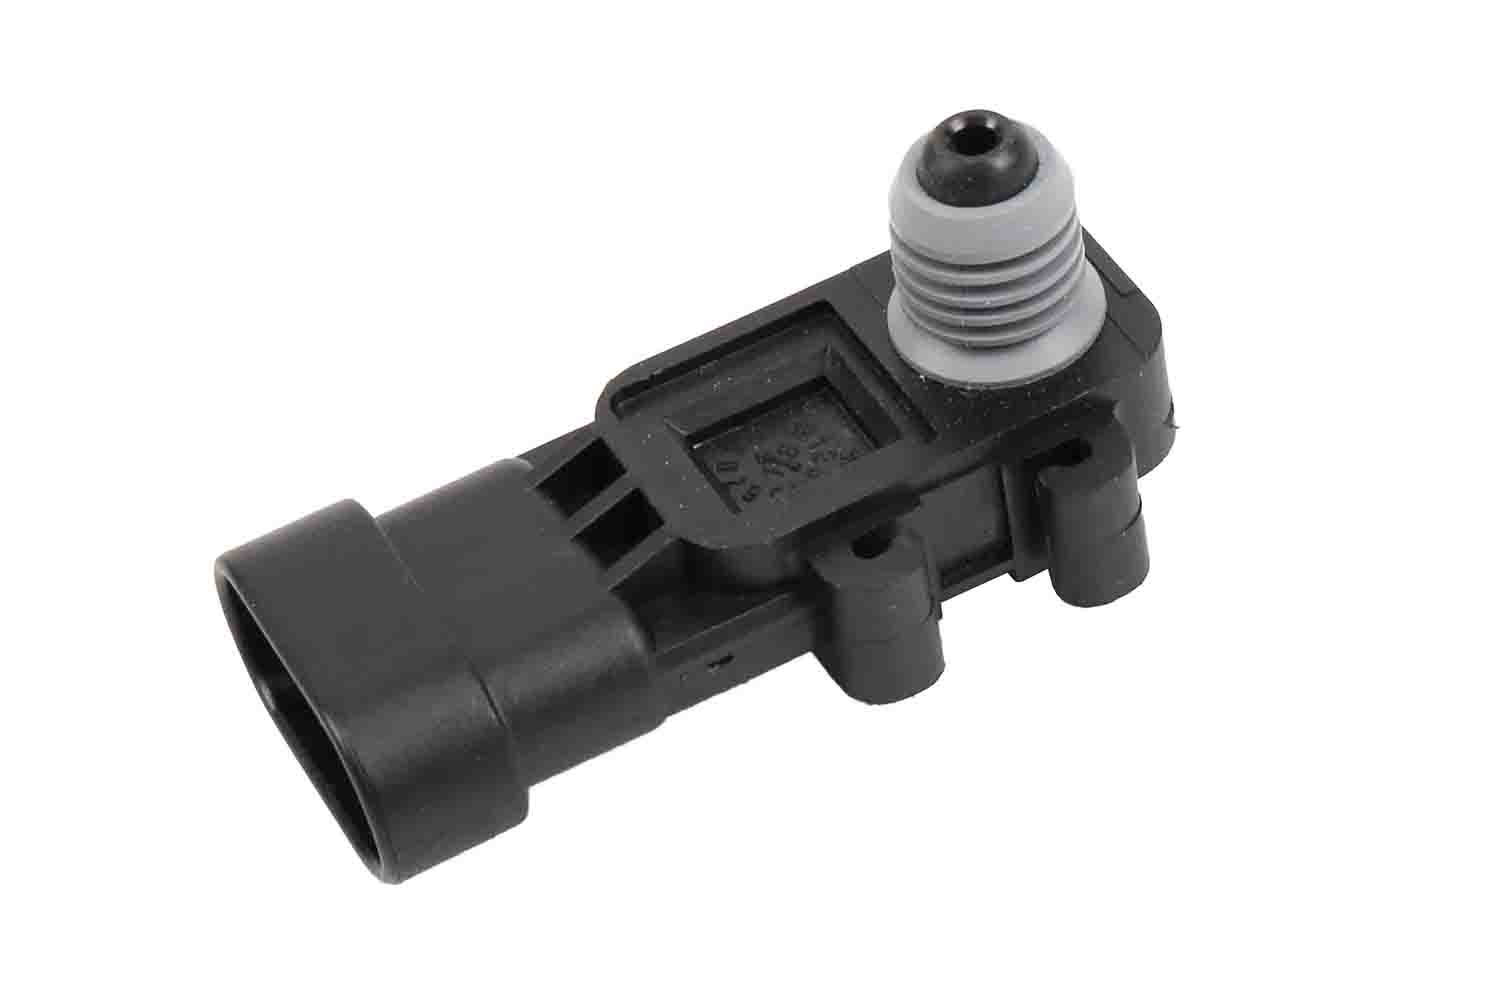 acdelco gm original equipment fuel tank pressure sensor dcb 16238399